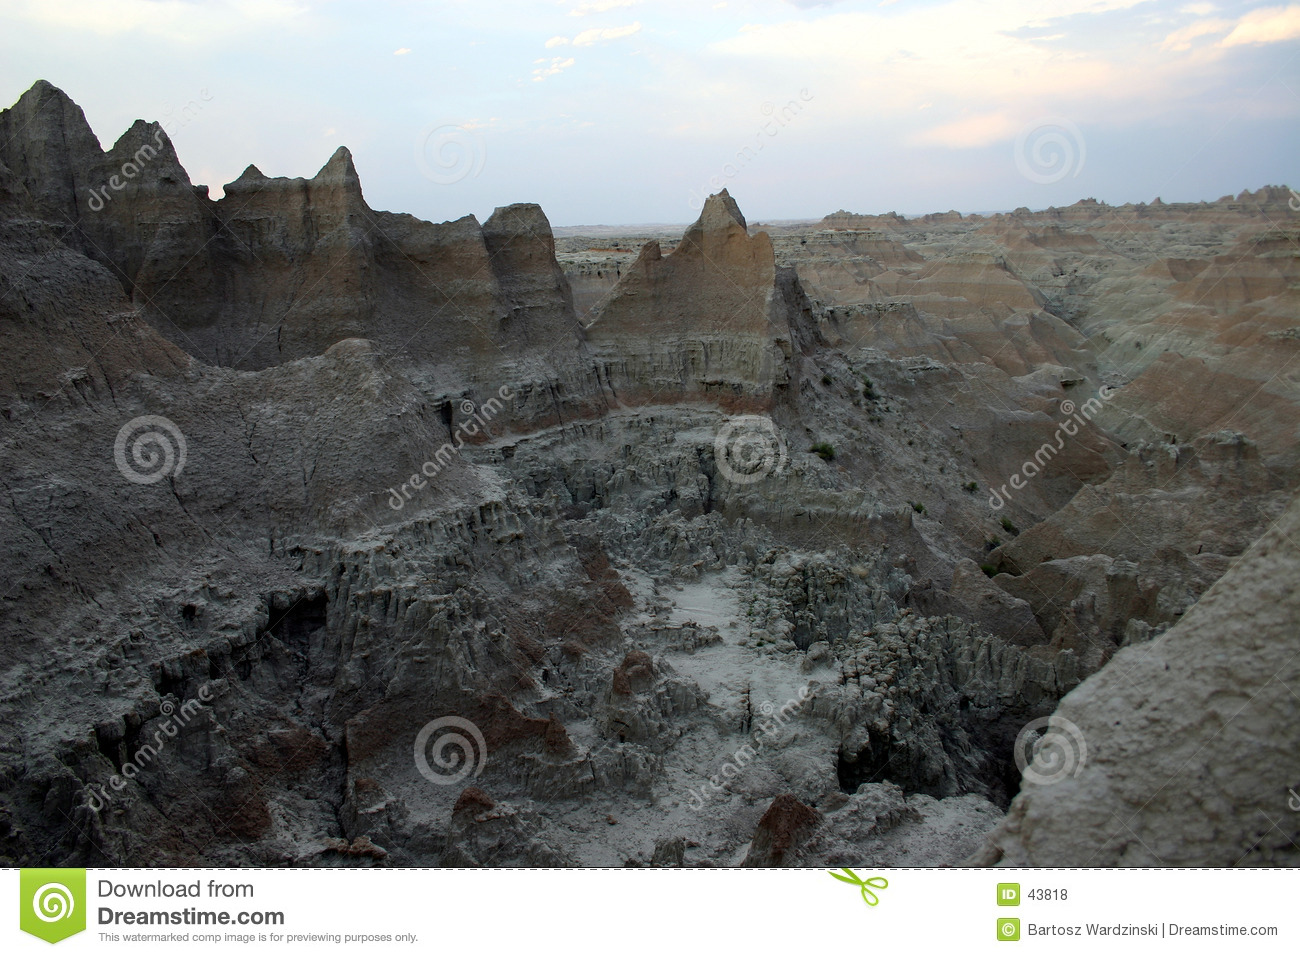 Het Nationale Park van Badlands